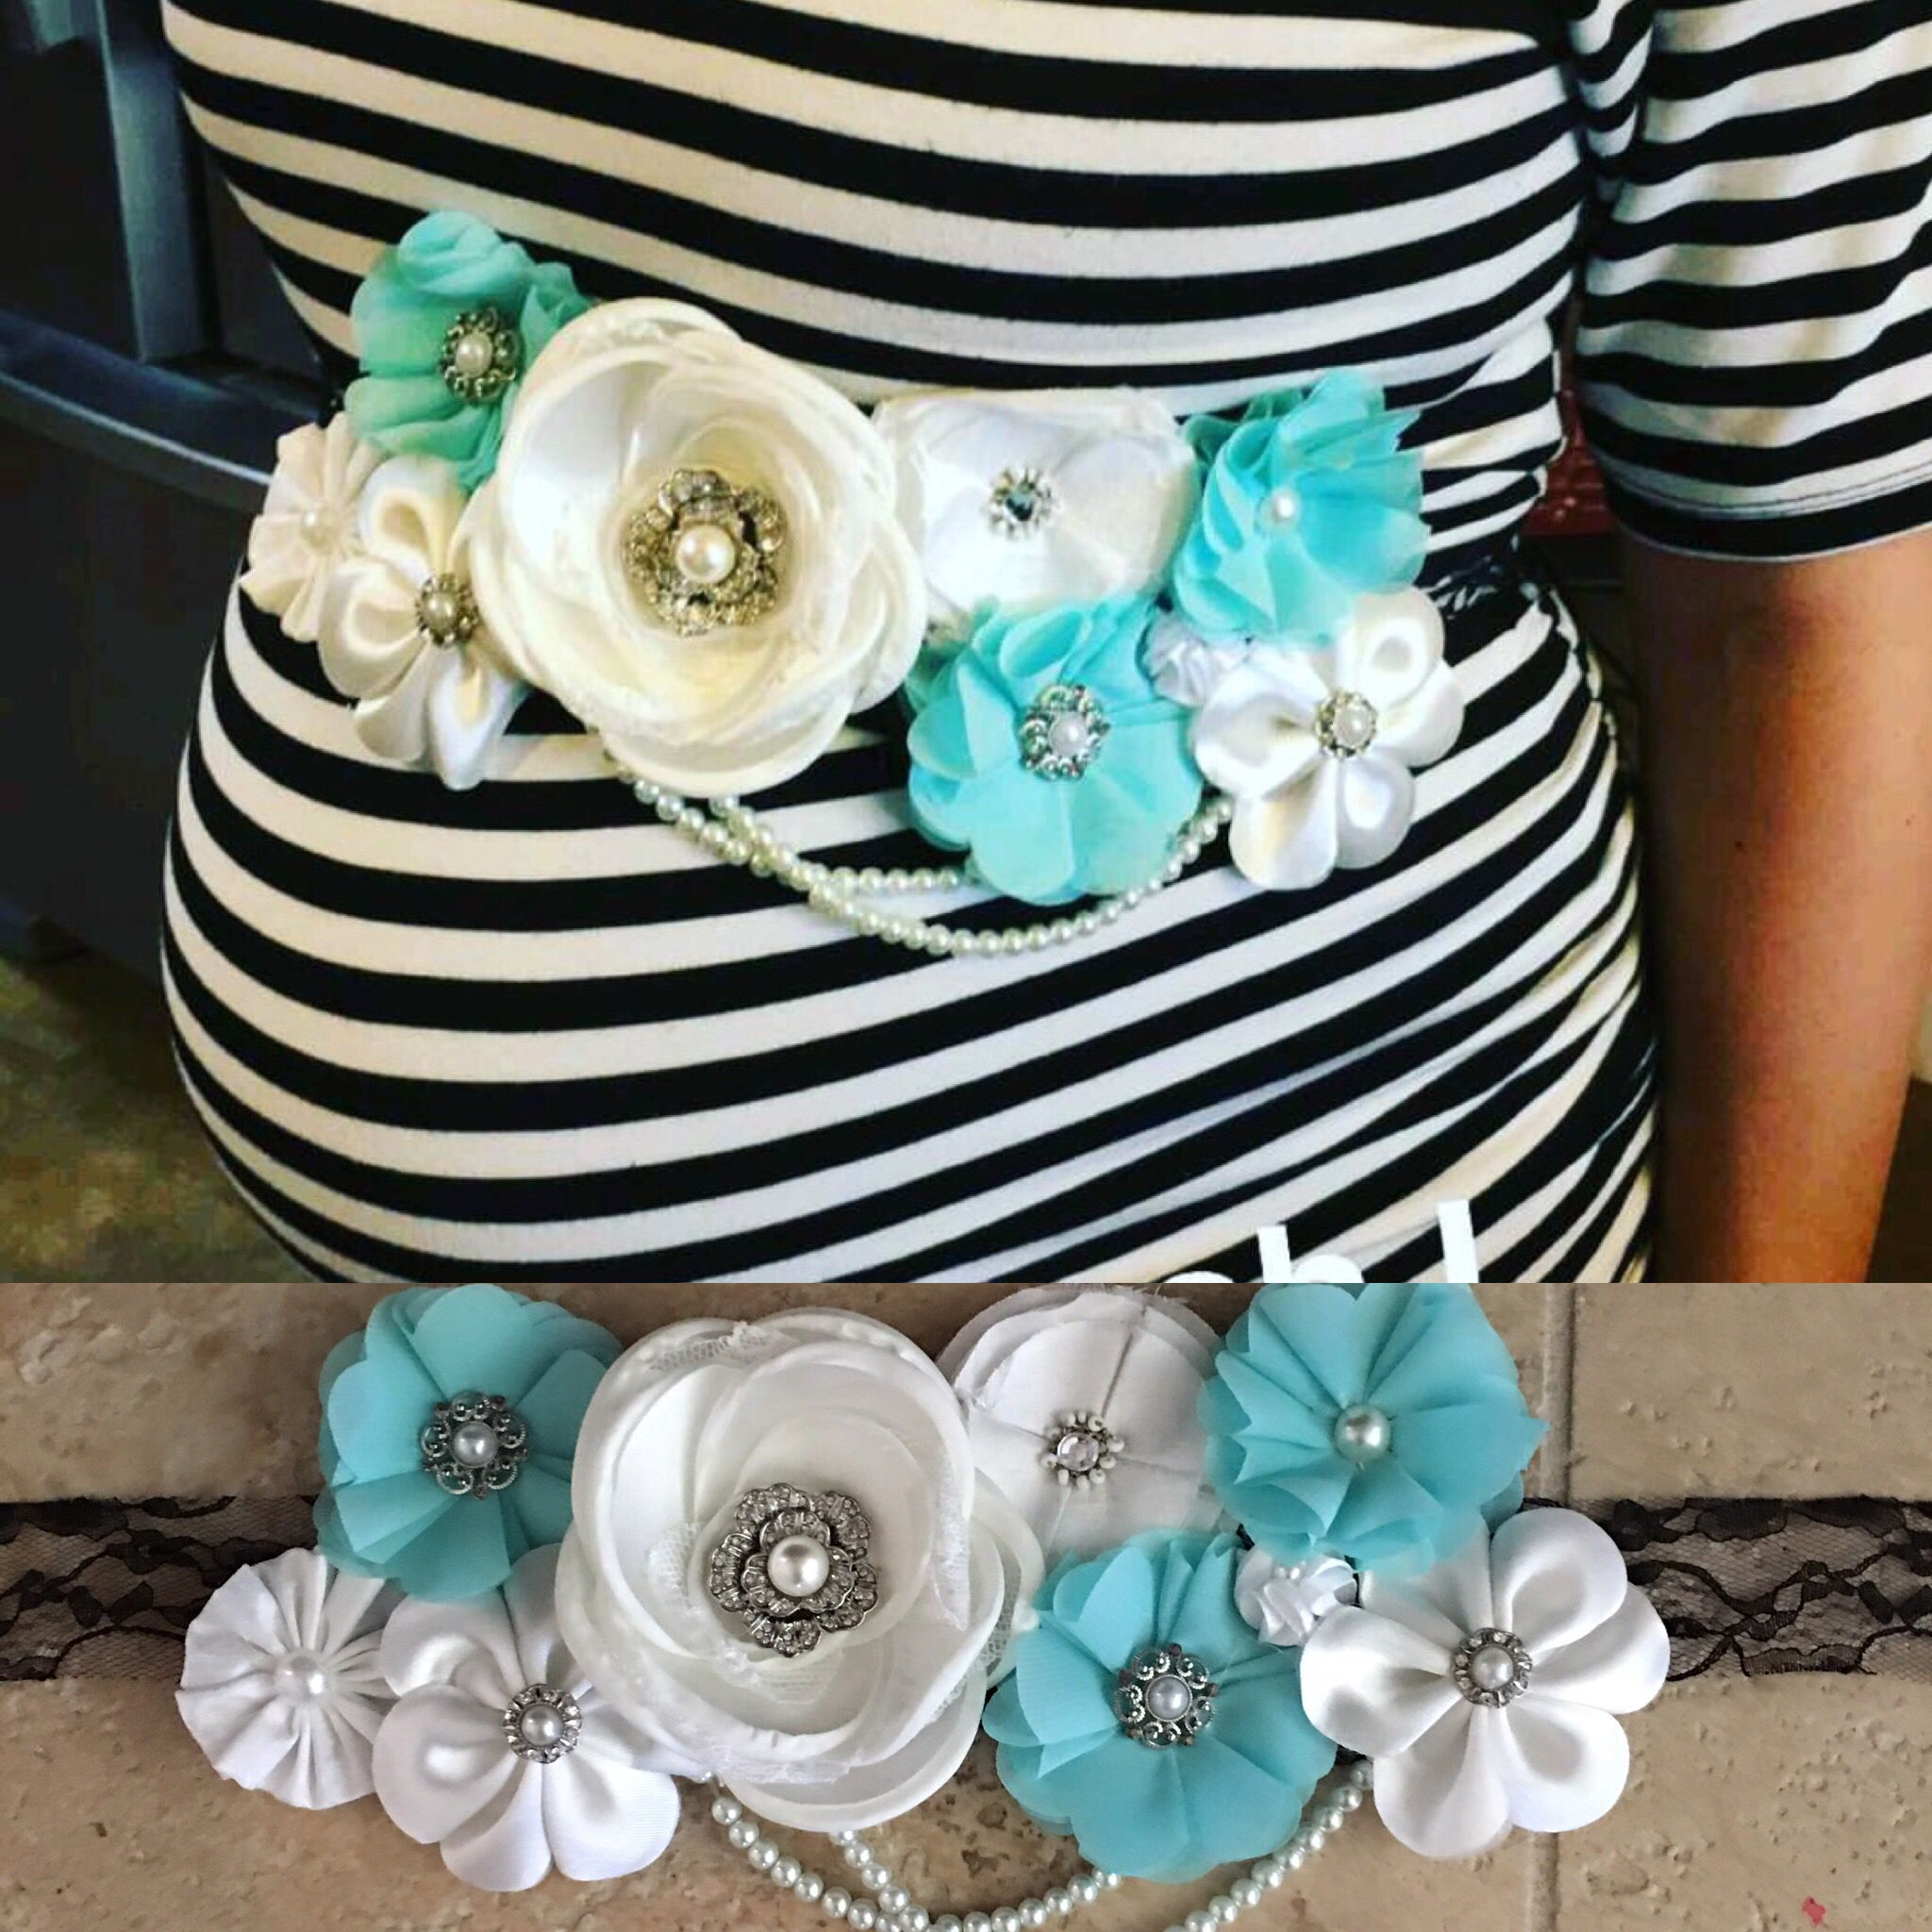 25 popular baby shower prizes that won t get tossed in the baby shower belly sash diy